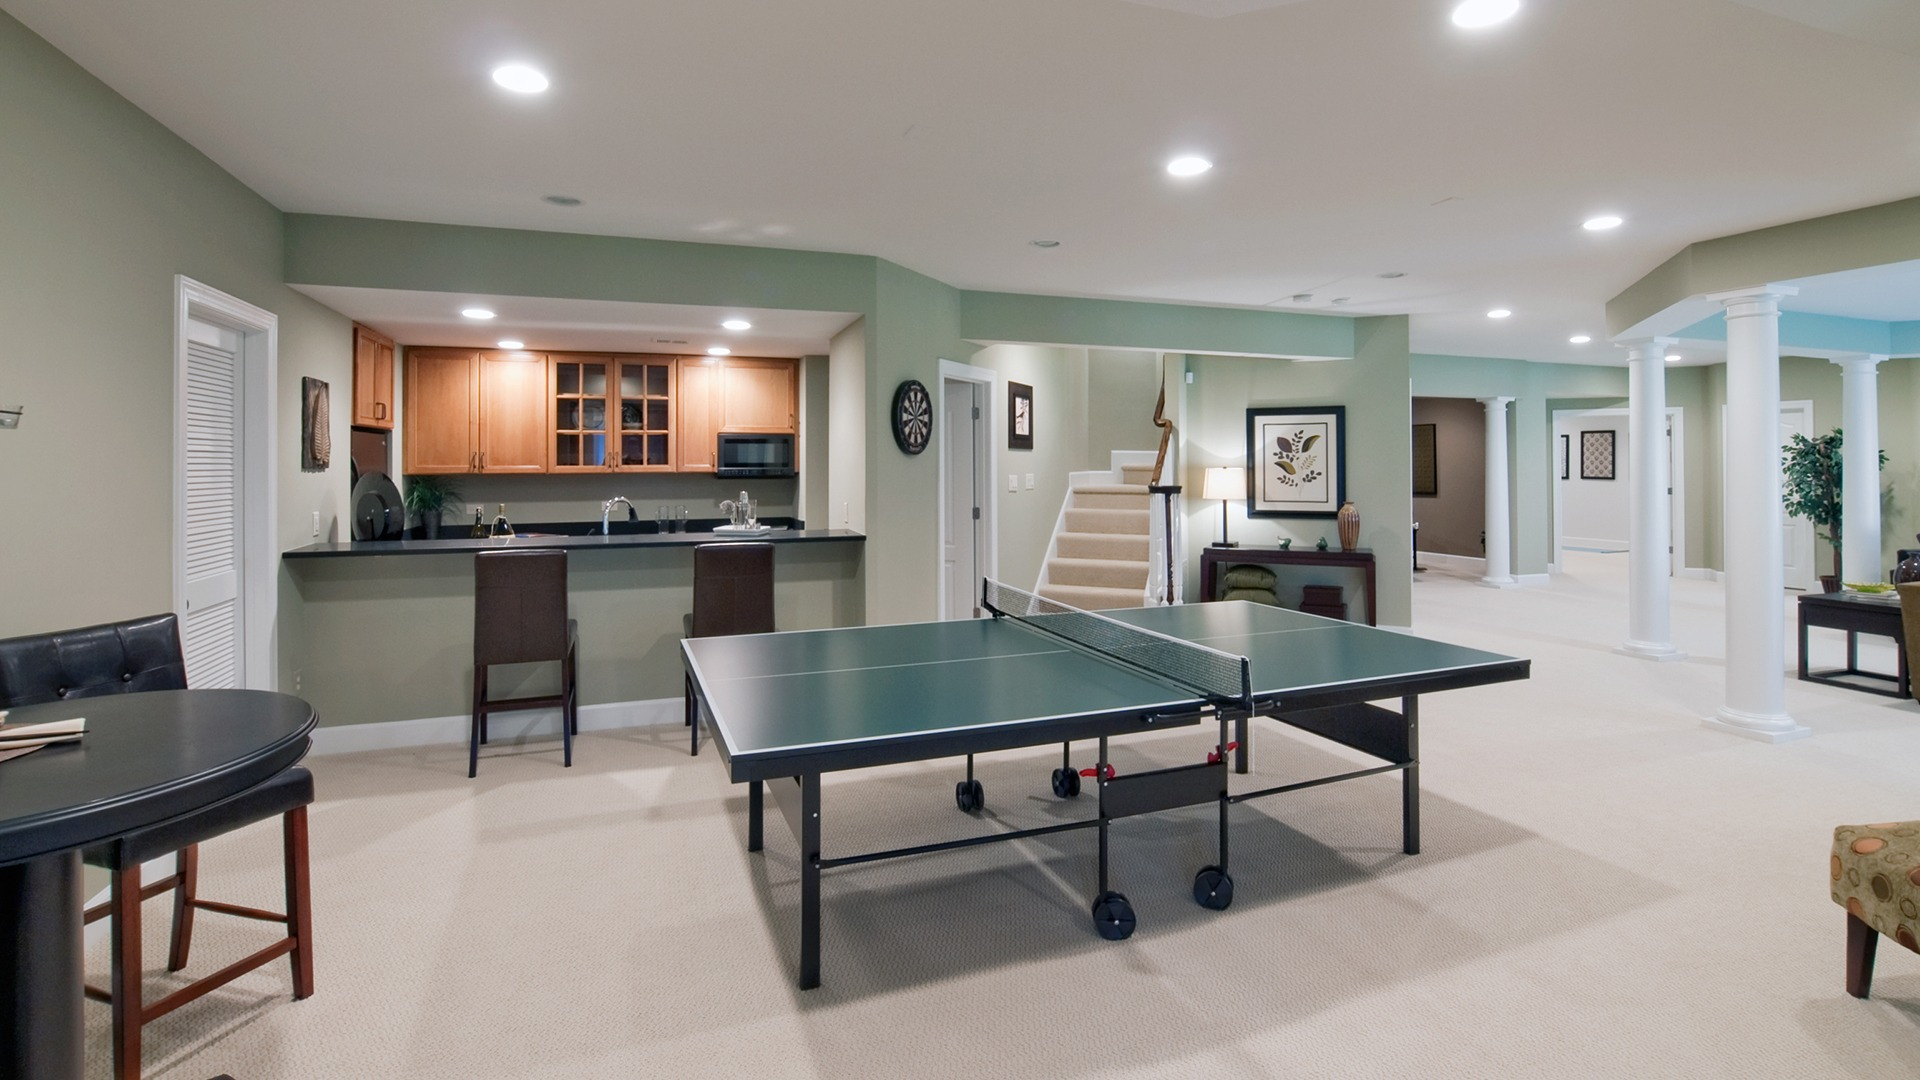 Grovemont Winthrop - Game Room and Wet Bar